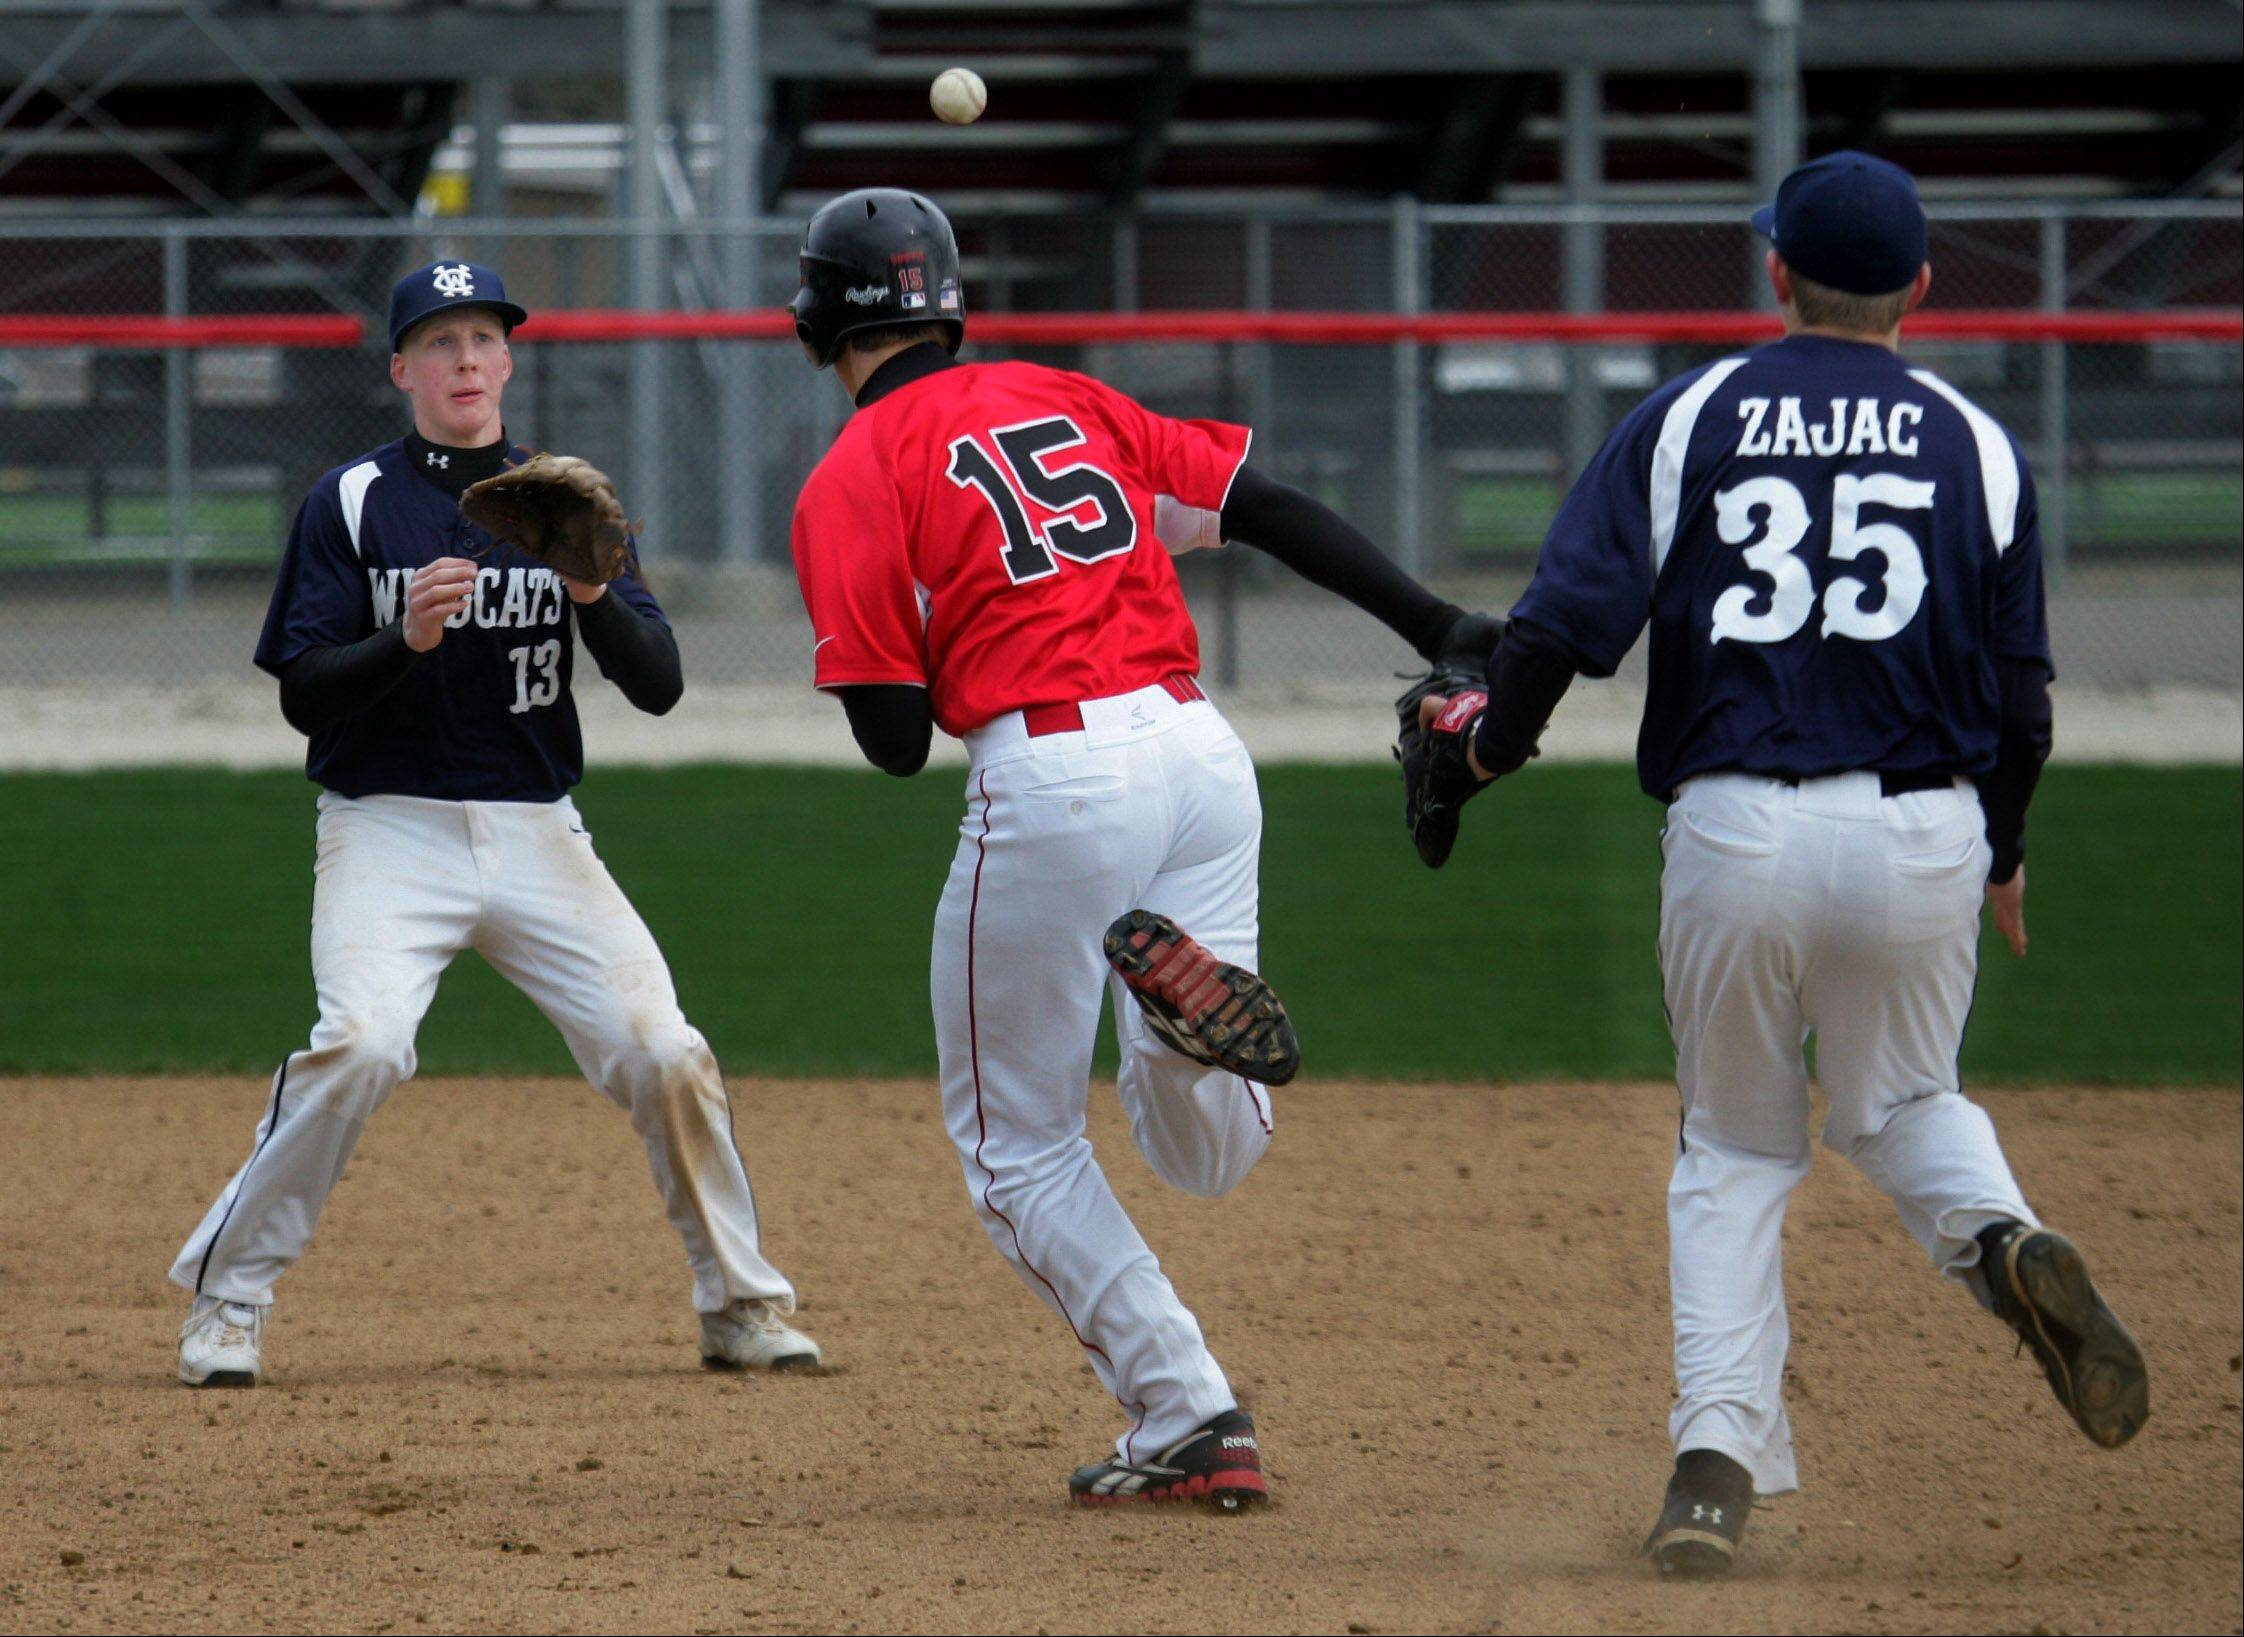 Grant baserunner Simeon Lucas is caught in a rundown between first and second base as West Chicago's Ryan Koester catches the ball from Mike Zajac on Tuesday at Grant.